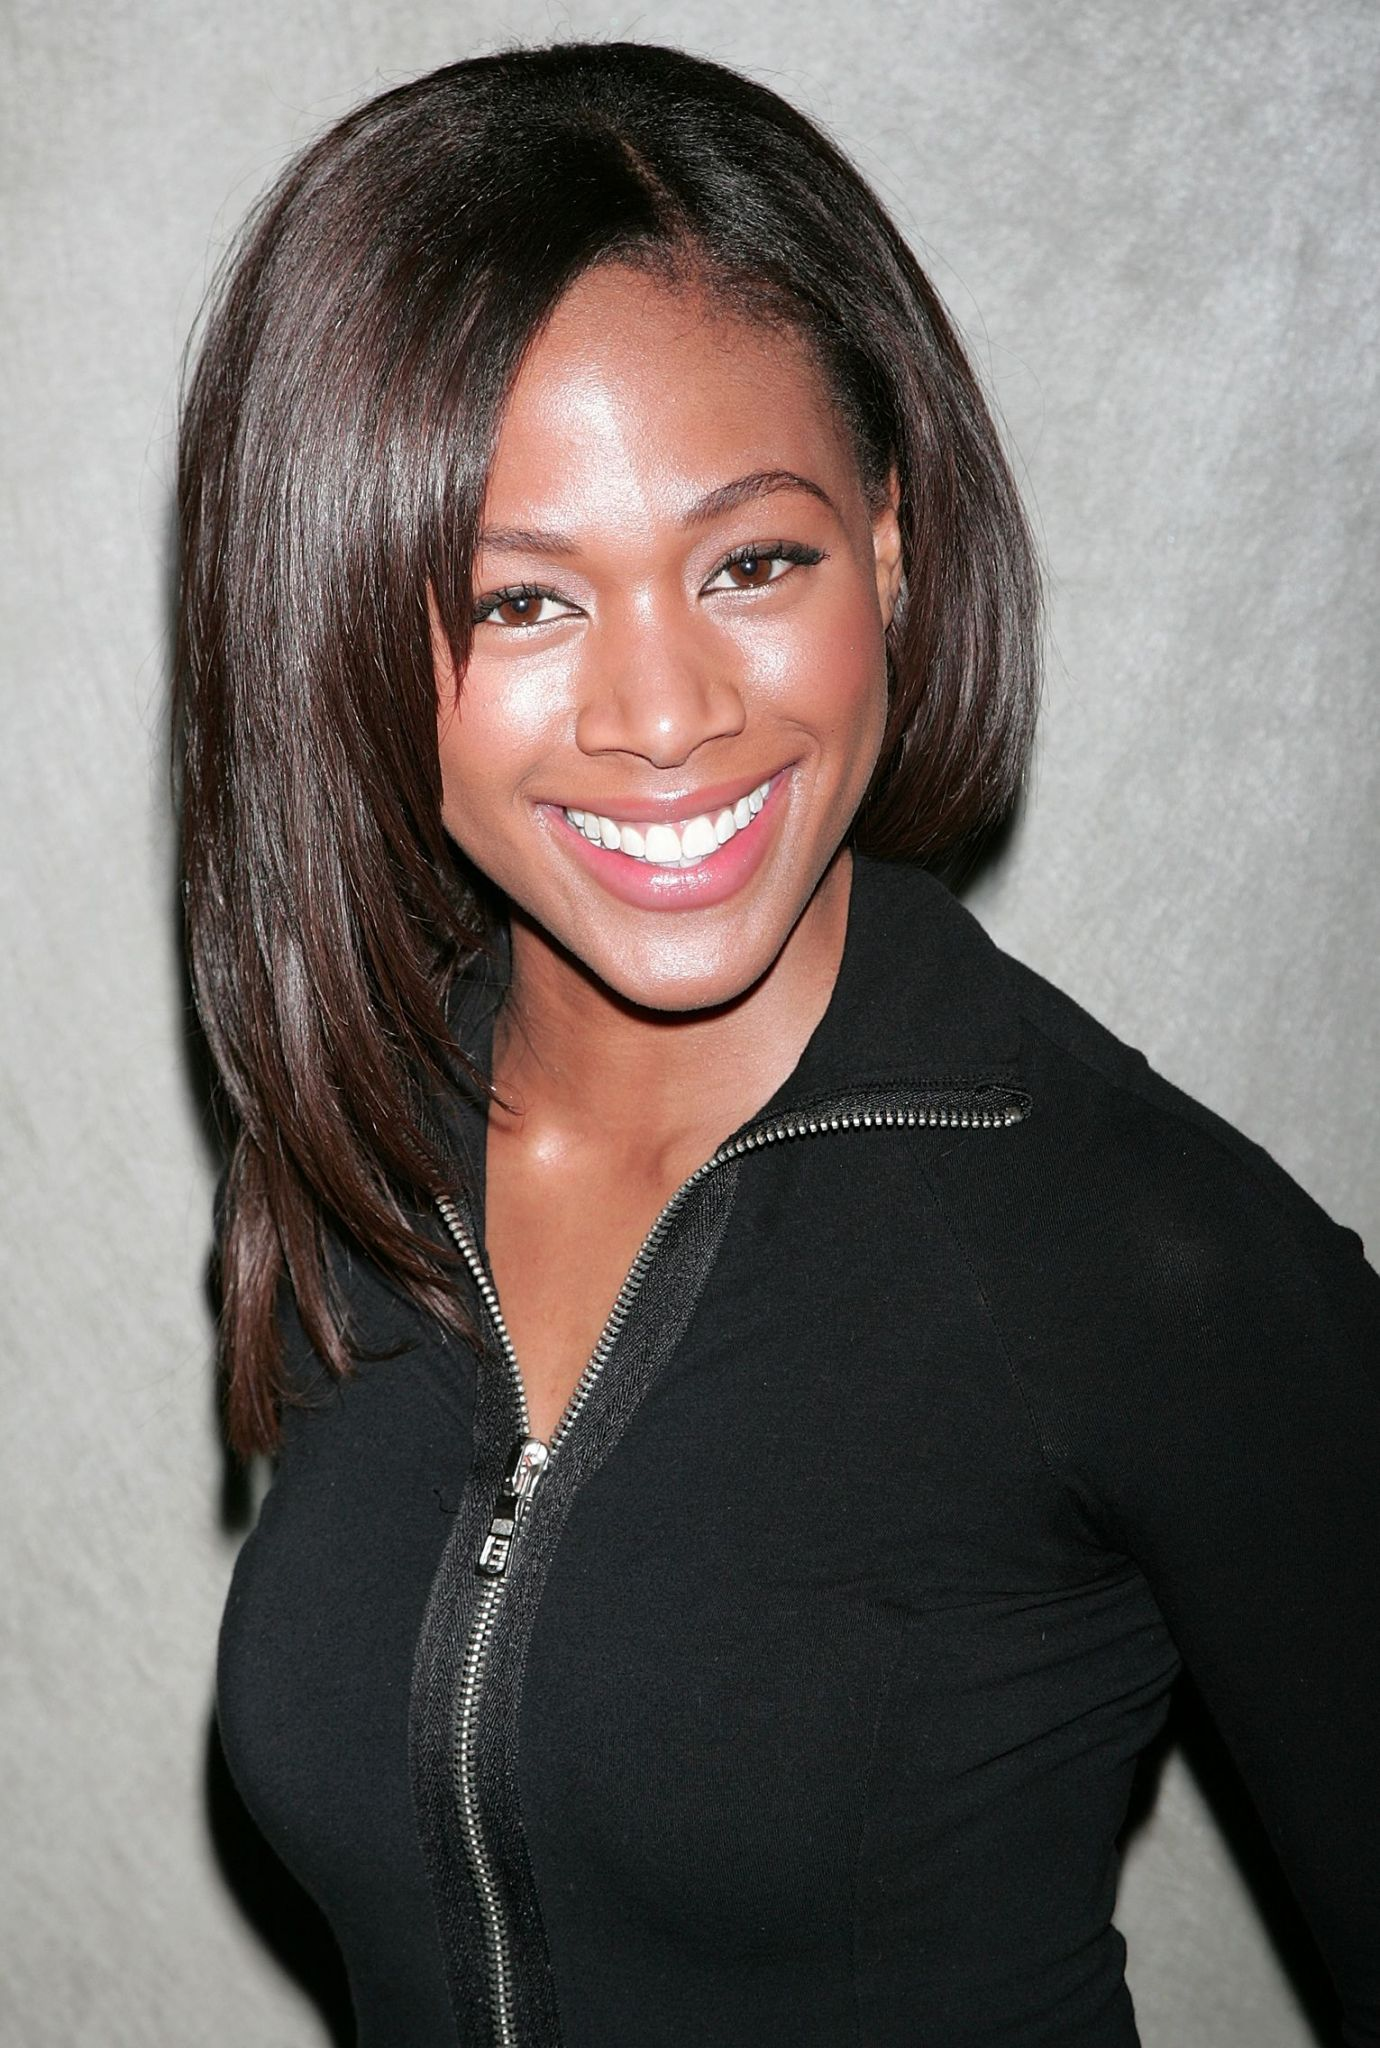 nicole beharie photonicole beharie instagram, nicole beharie gif, nicole beharie youtube, nicole beharie left, nicole beharie movies, nicole beharie tumblr, nicole beharie leaves sleepy hollow, nicole beharie photo, nicole beharie sleepy hollow, nicole beharie wiki, nicole beharie, nicole beharie boyfriend, nicole beharie and tom mison, nicole beharie twitter, nicole beharie esquire, nicole beharie wikipedia